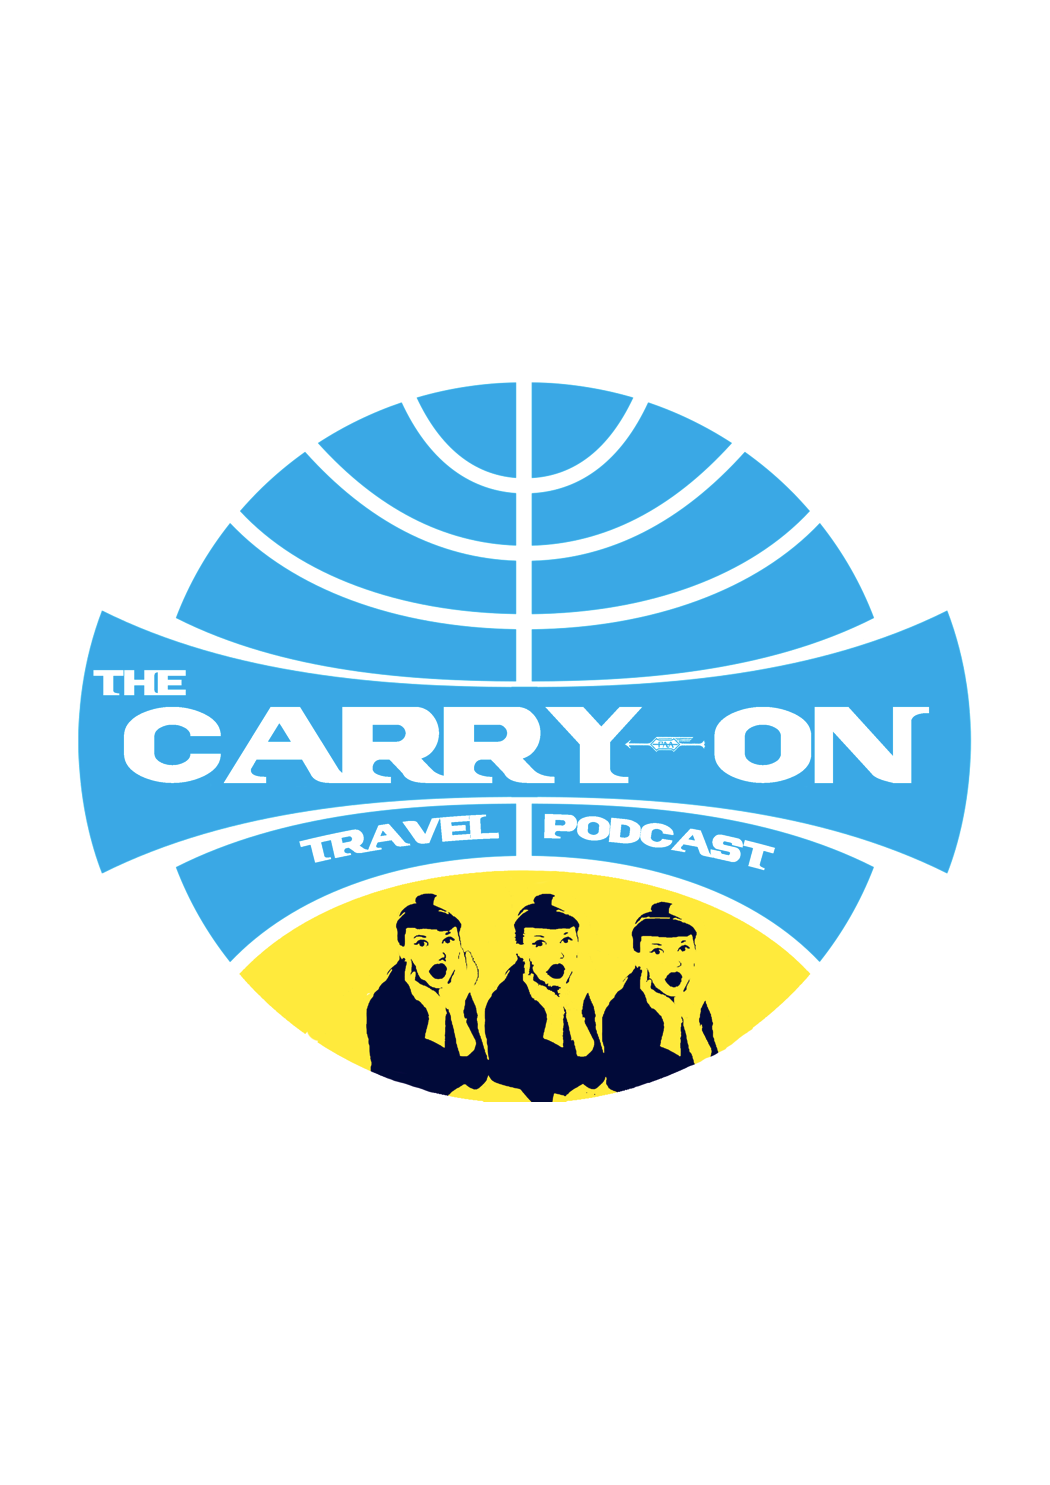 Good NEWS:The Carry On travel podcast brings relief to listeners (and a chance to win)